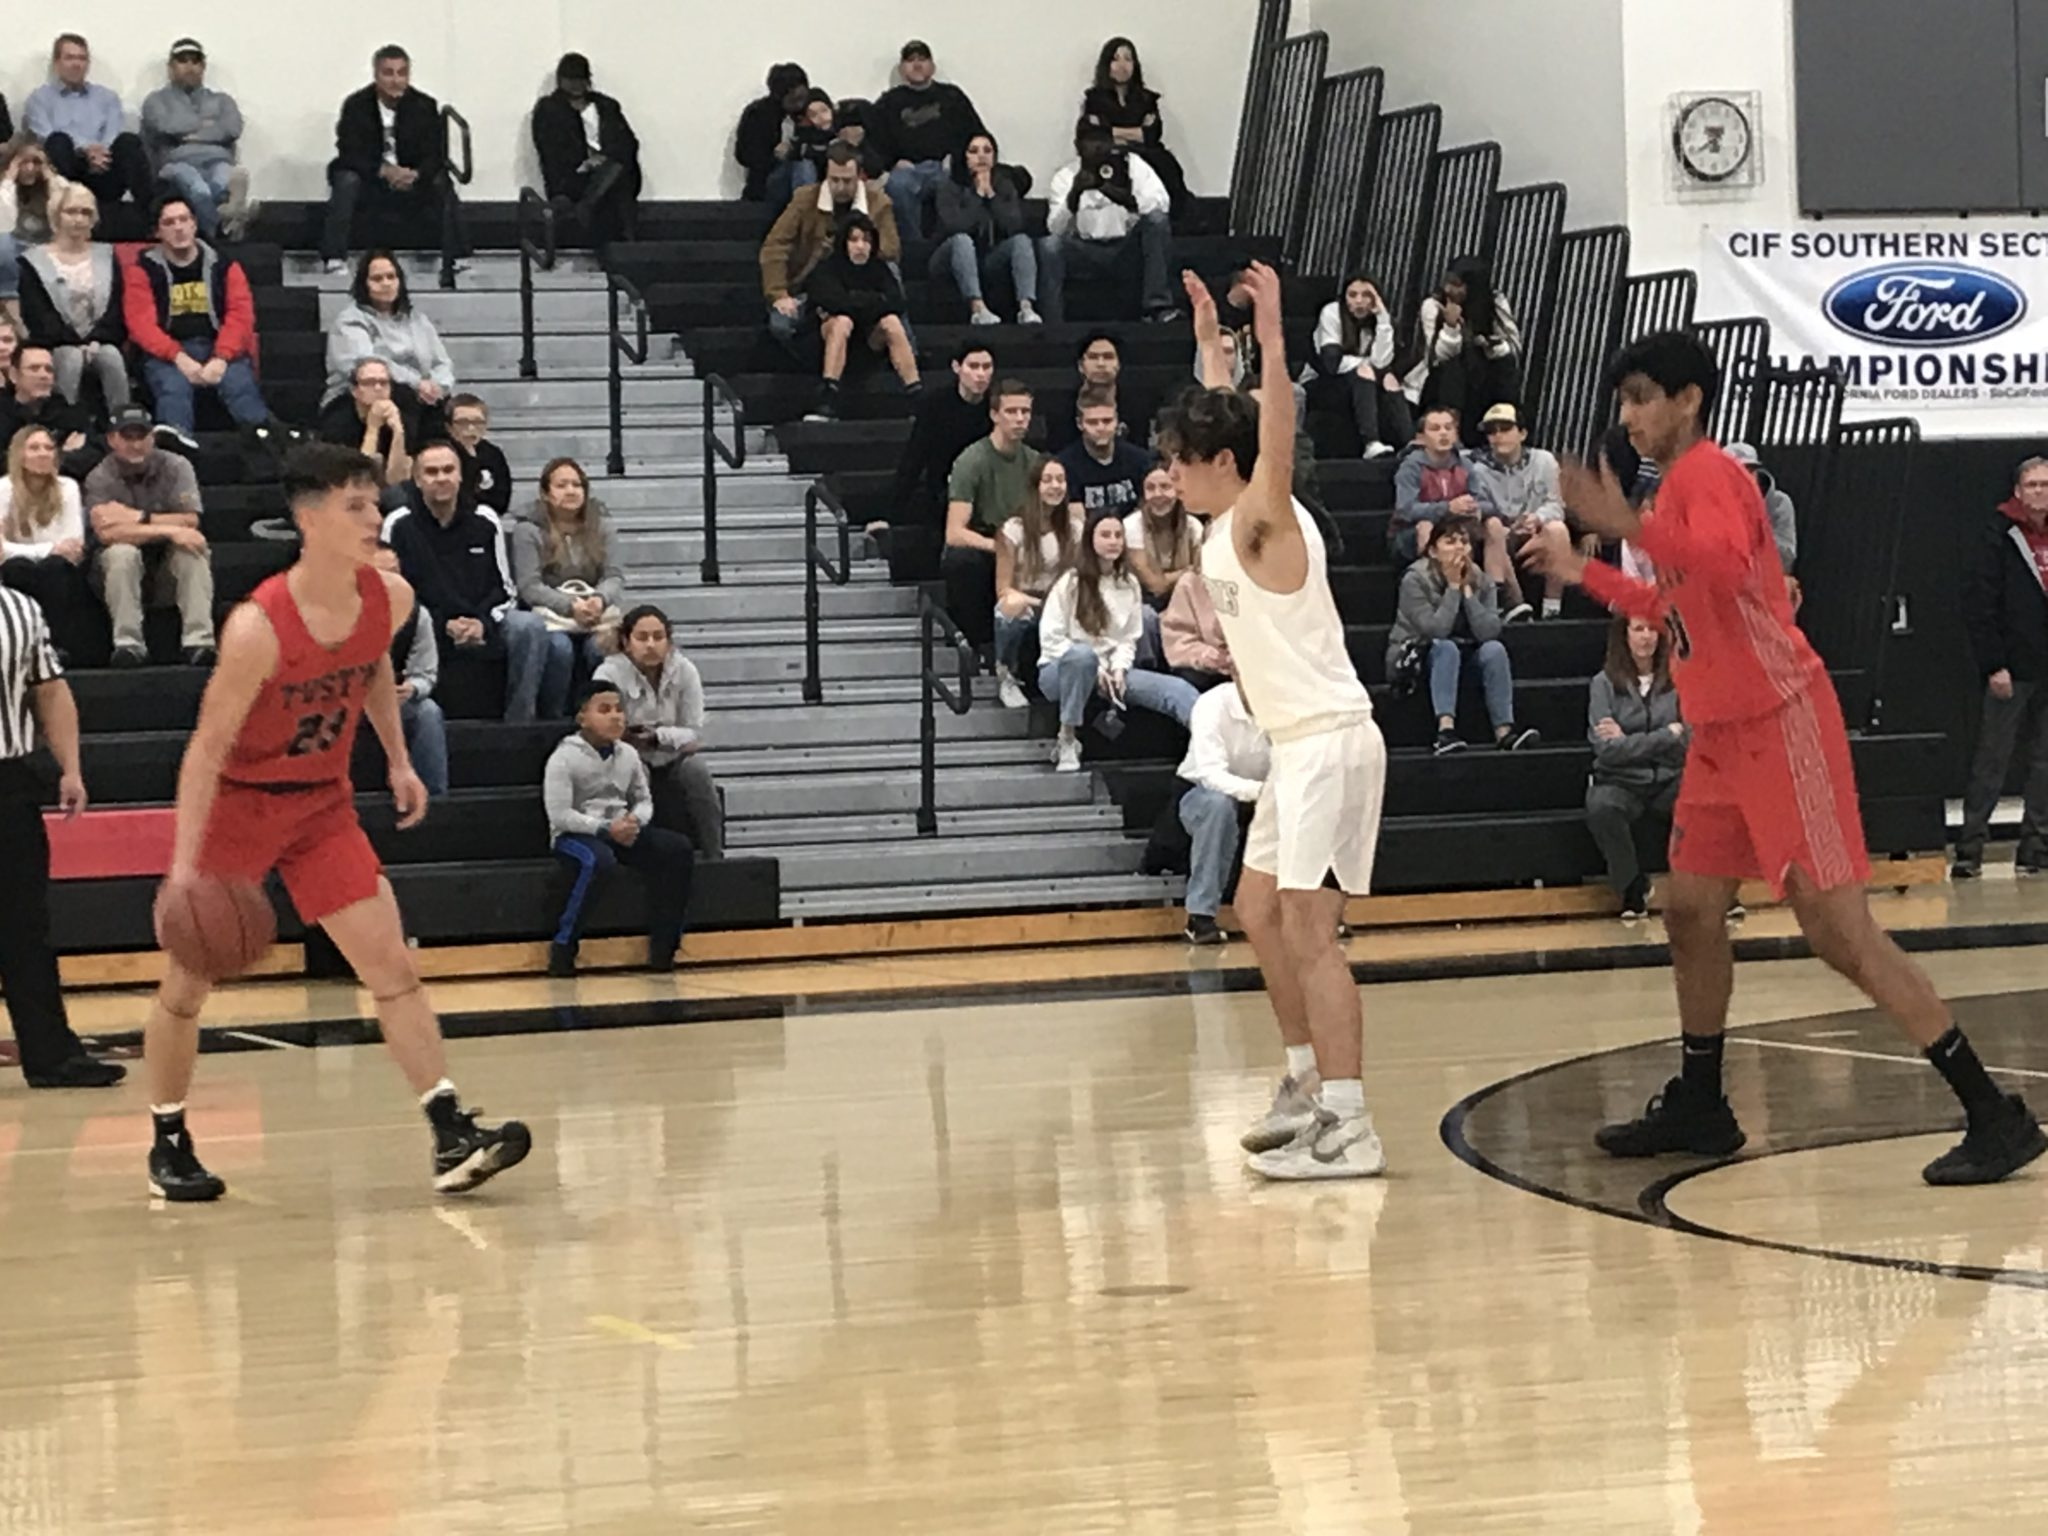 Estancia Christmas Basketball Tournament 2021 Schedules Five Oc High School Boys Basketball Tournaments Being Held This Week Oc Sports Zone Mobile